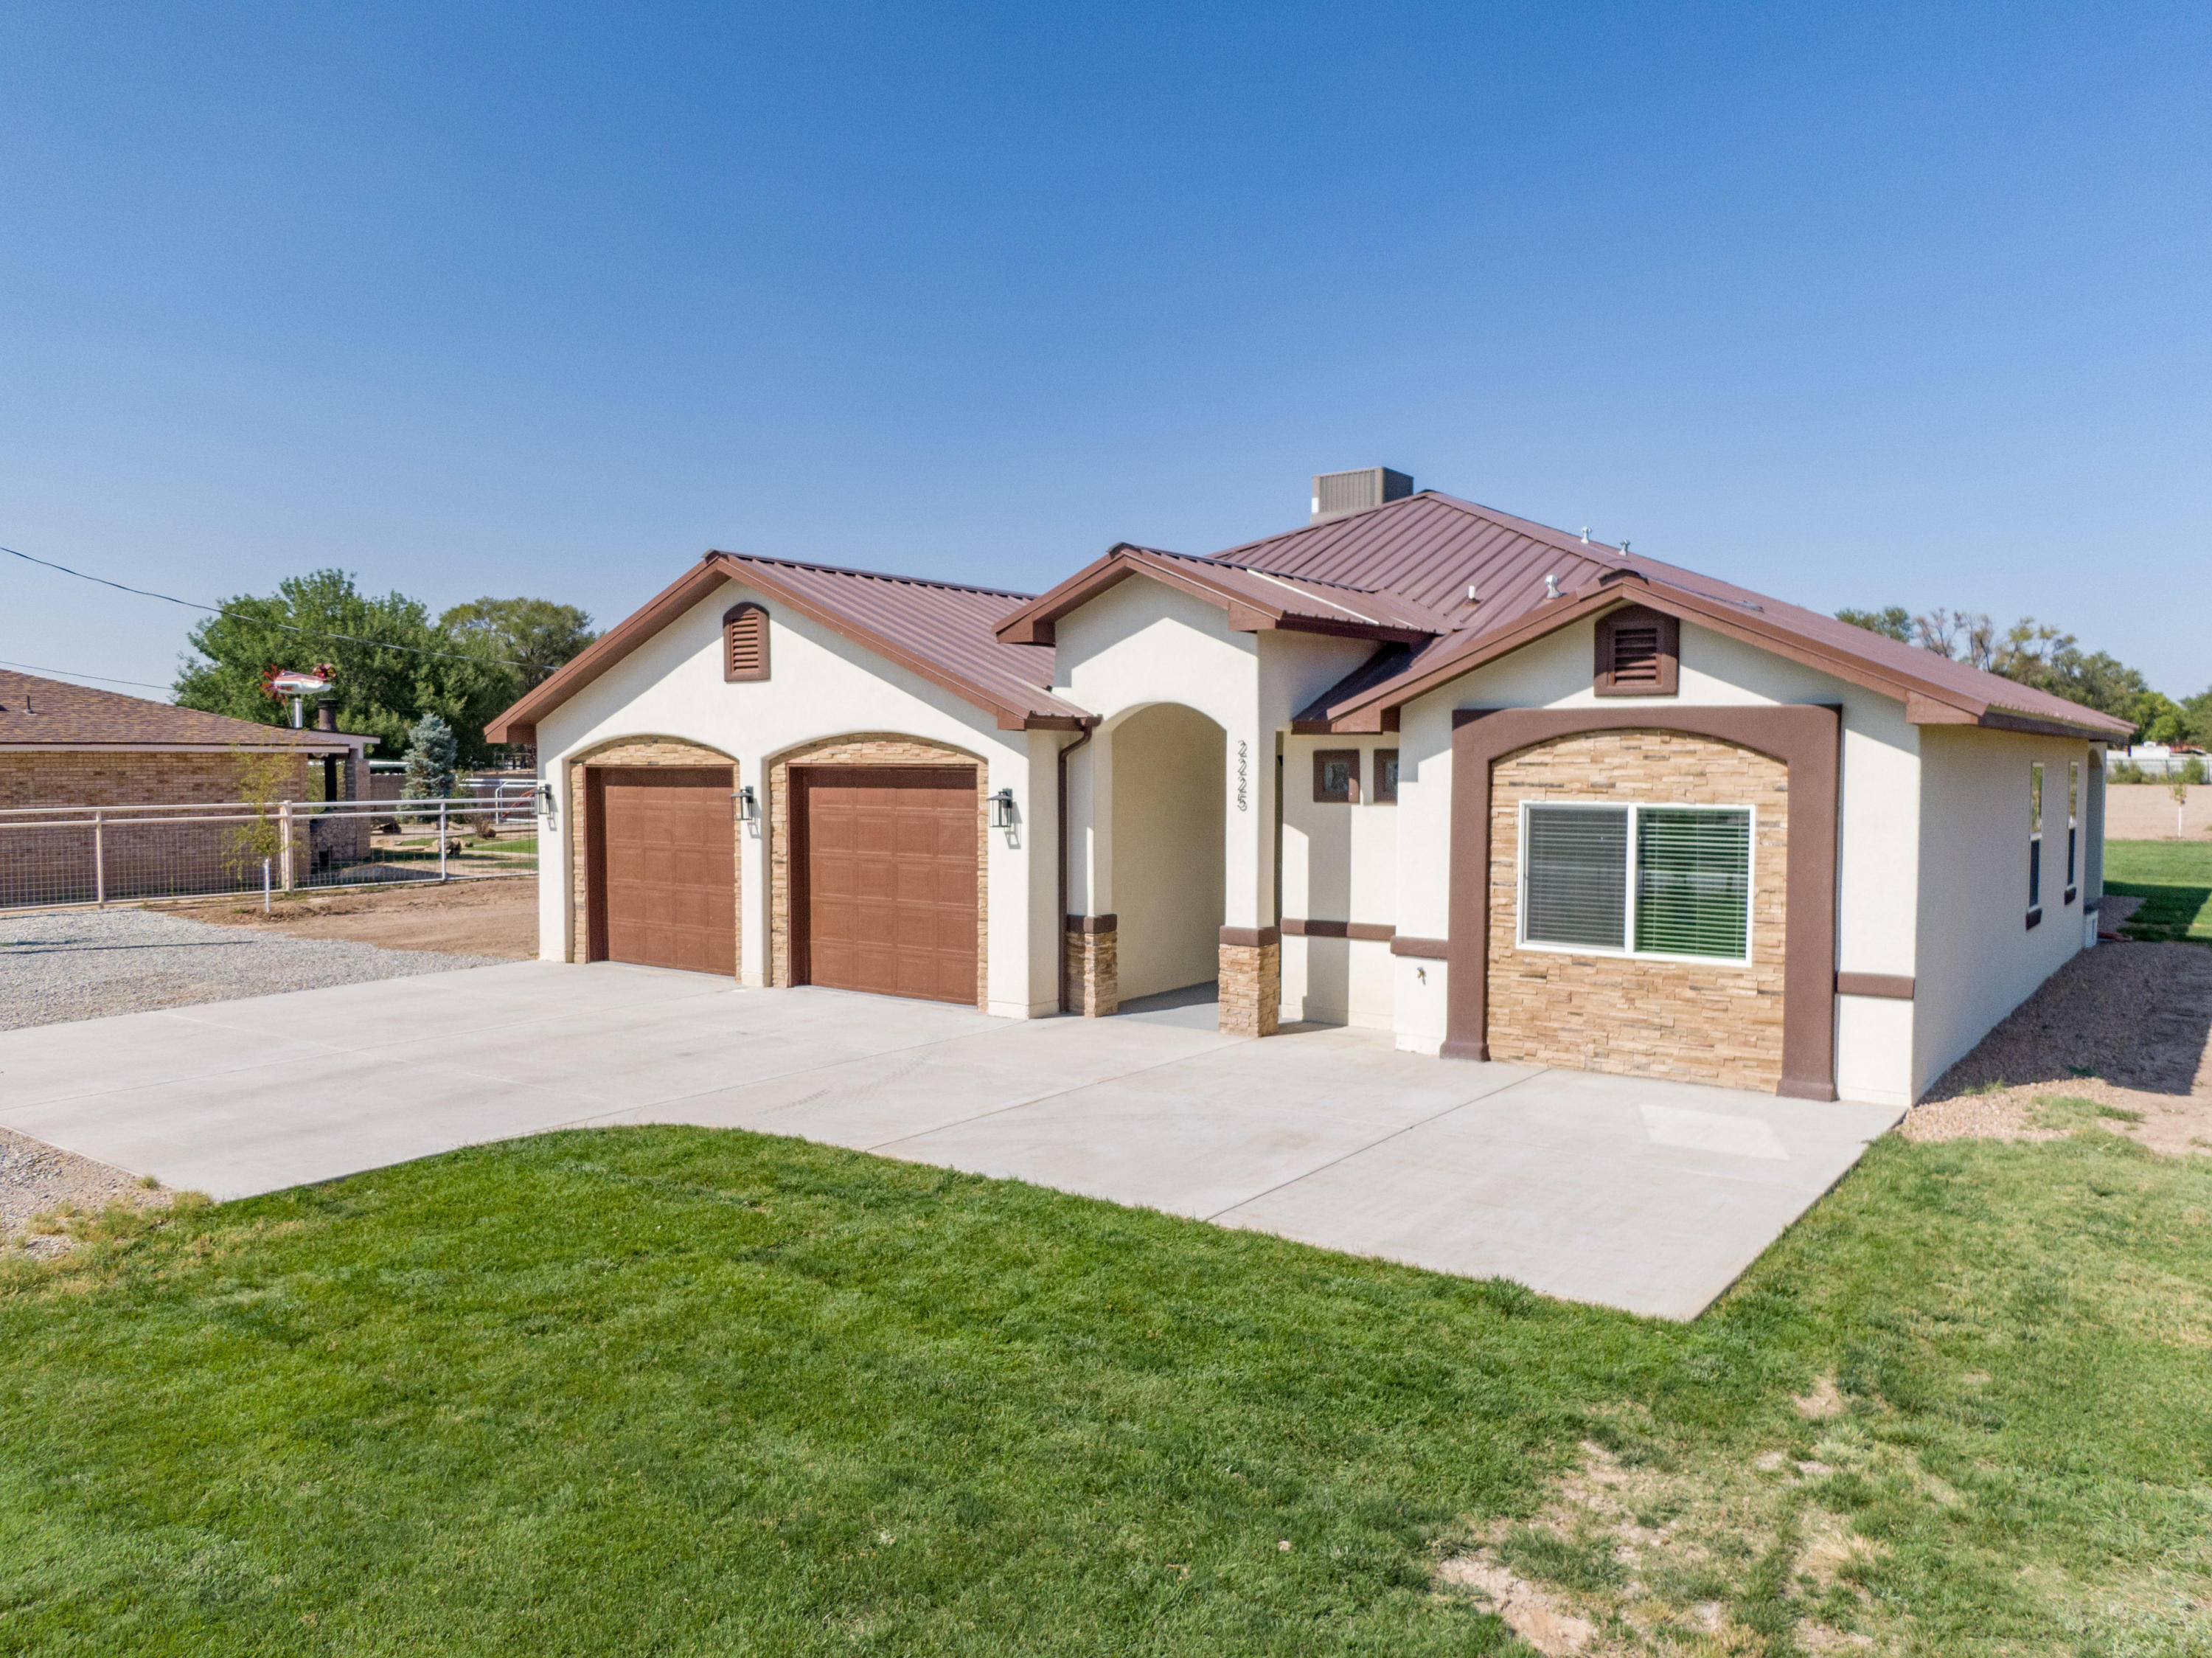 Welcome home to this beautiful newly constructed custom home on 1.25 serene acres in the highly desired Hubbell Acres neighborhood! With over 2600 sqft, this  gorgeous open concept floor plan includes tile floors throughout with 5 bedrooms (including two masters or mother-in-law quarters!), 3 1/2 bath, oversized 2 car garage, large island in the kitchen with custom cabinets, granite countertops, stainless steel appliances, double ovens and wine cooler. Perfect horse property!Schedule your private showing today, this one won't last long!!